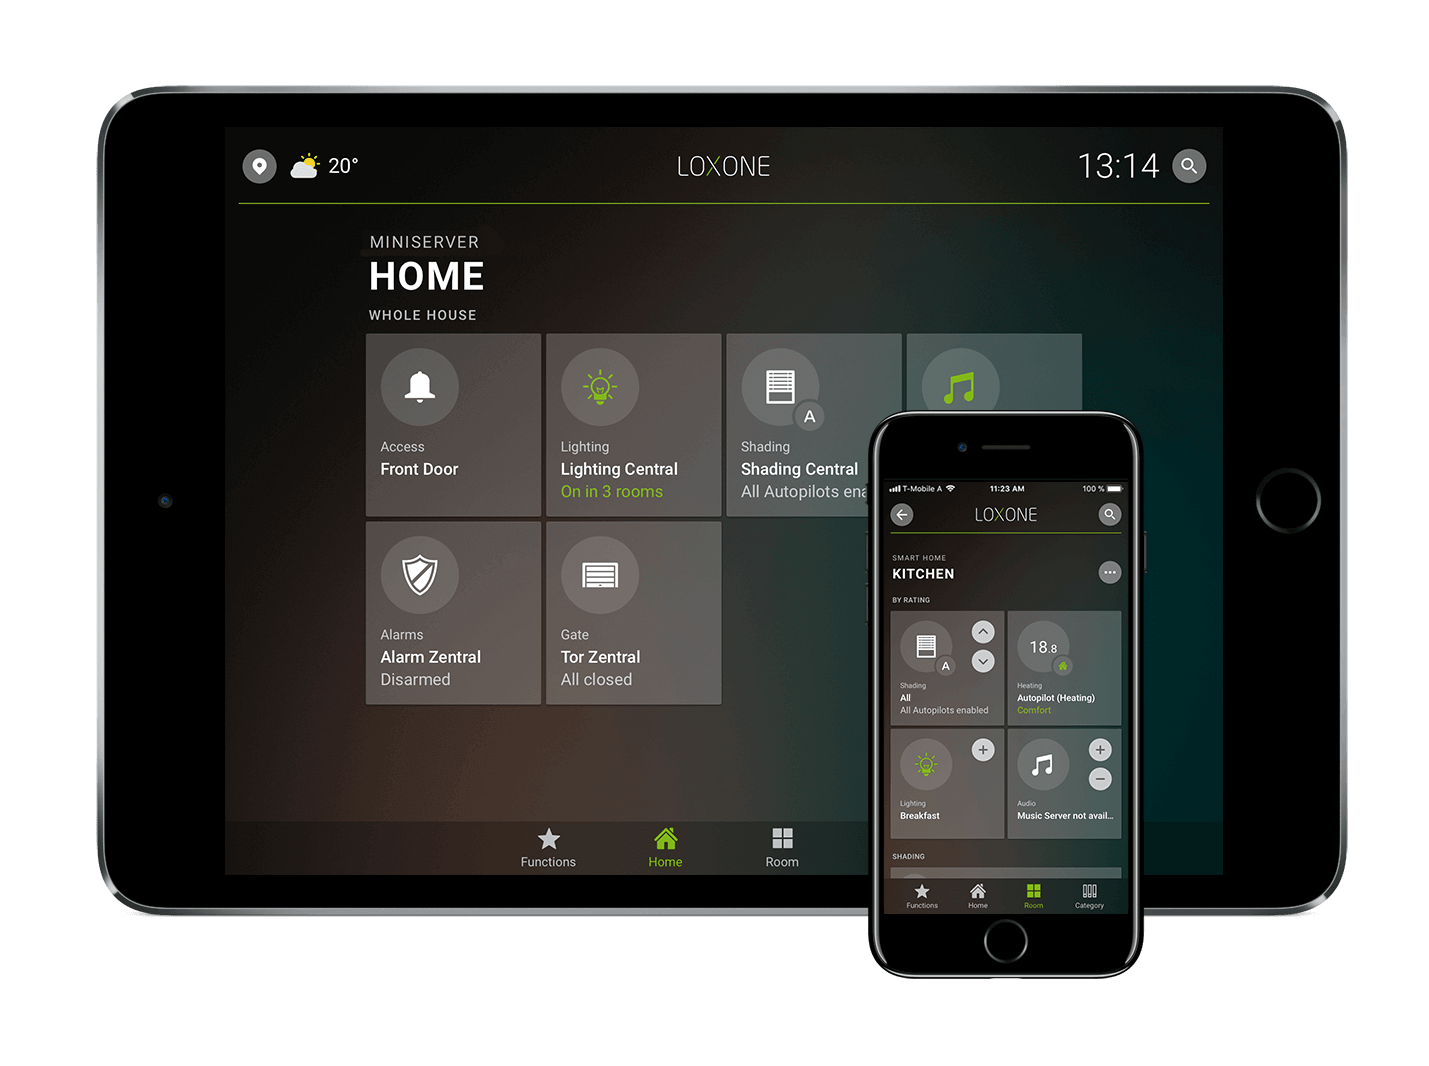 Loxone Smart Home App